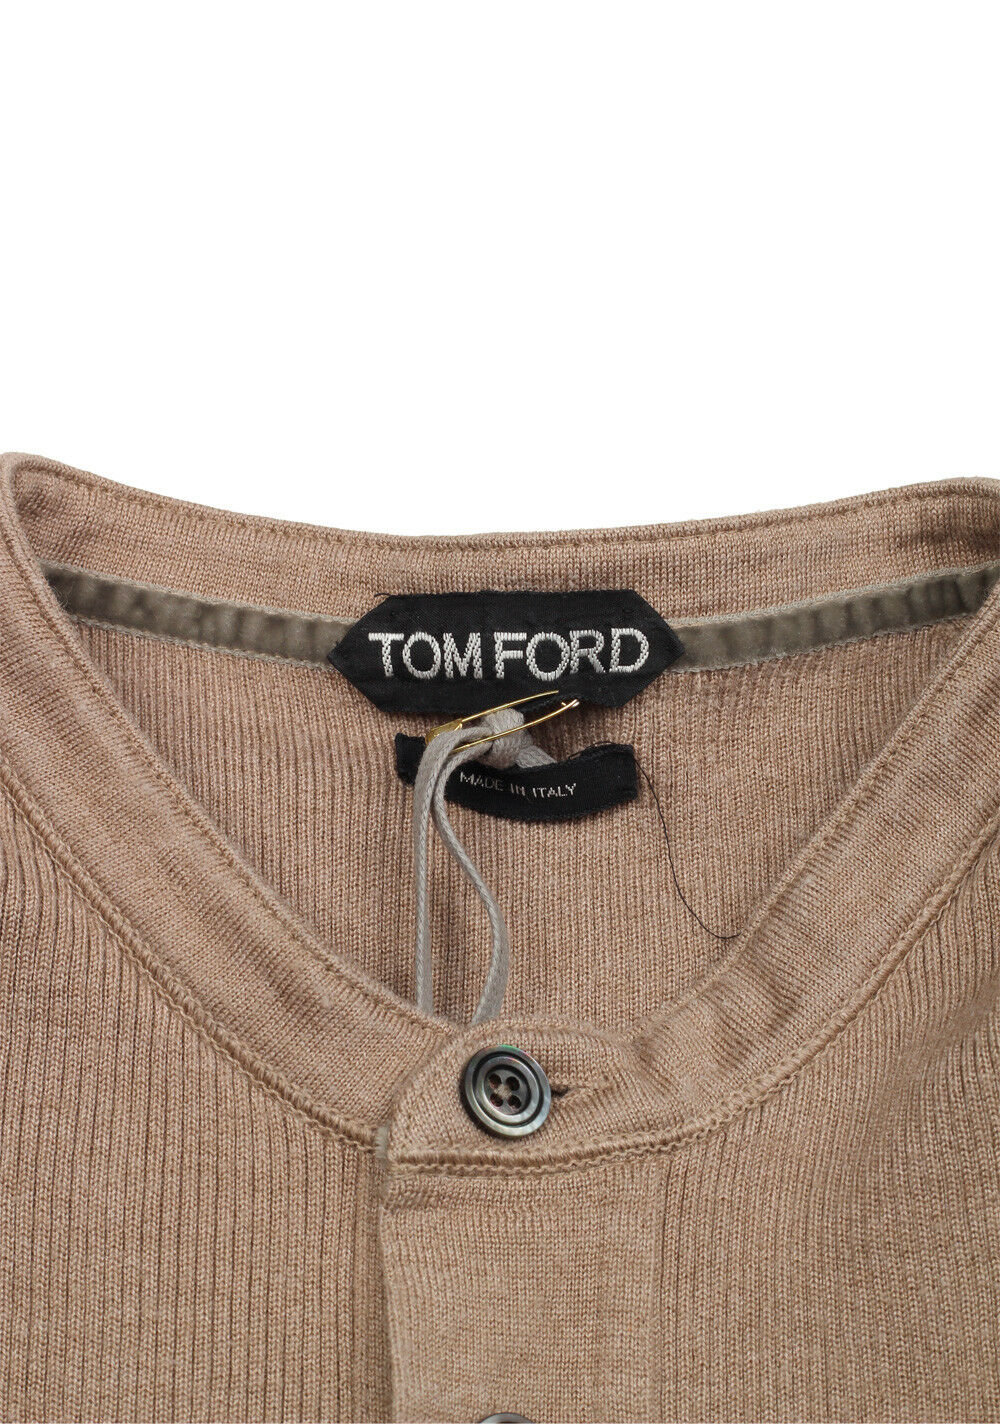 Nuovo TOM FORD marrone Long Sleeve Henley Sweater Size Silk 48 / 38R U.S. In Silk Size Blen... 94b915